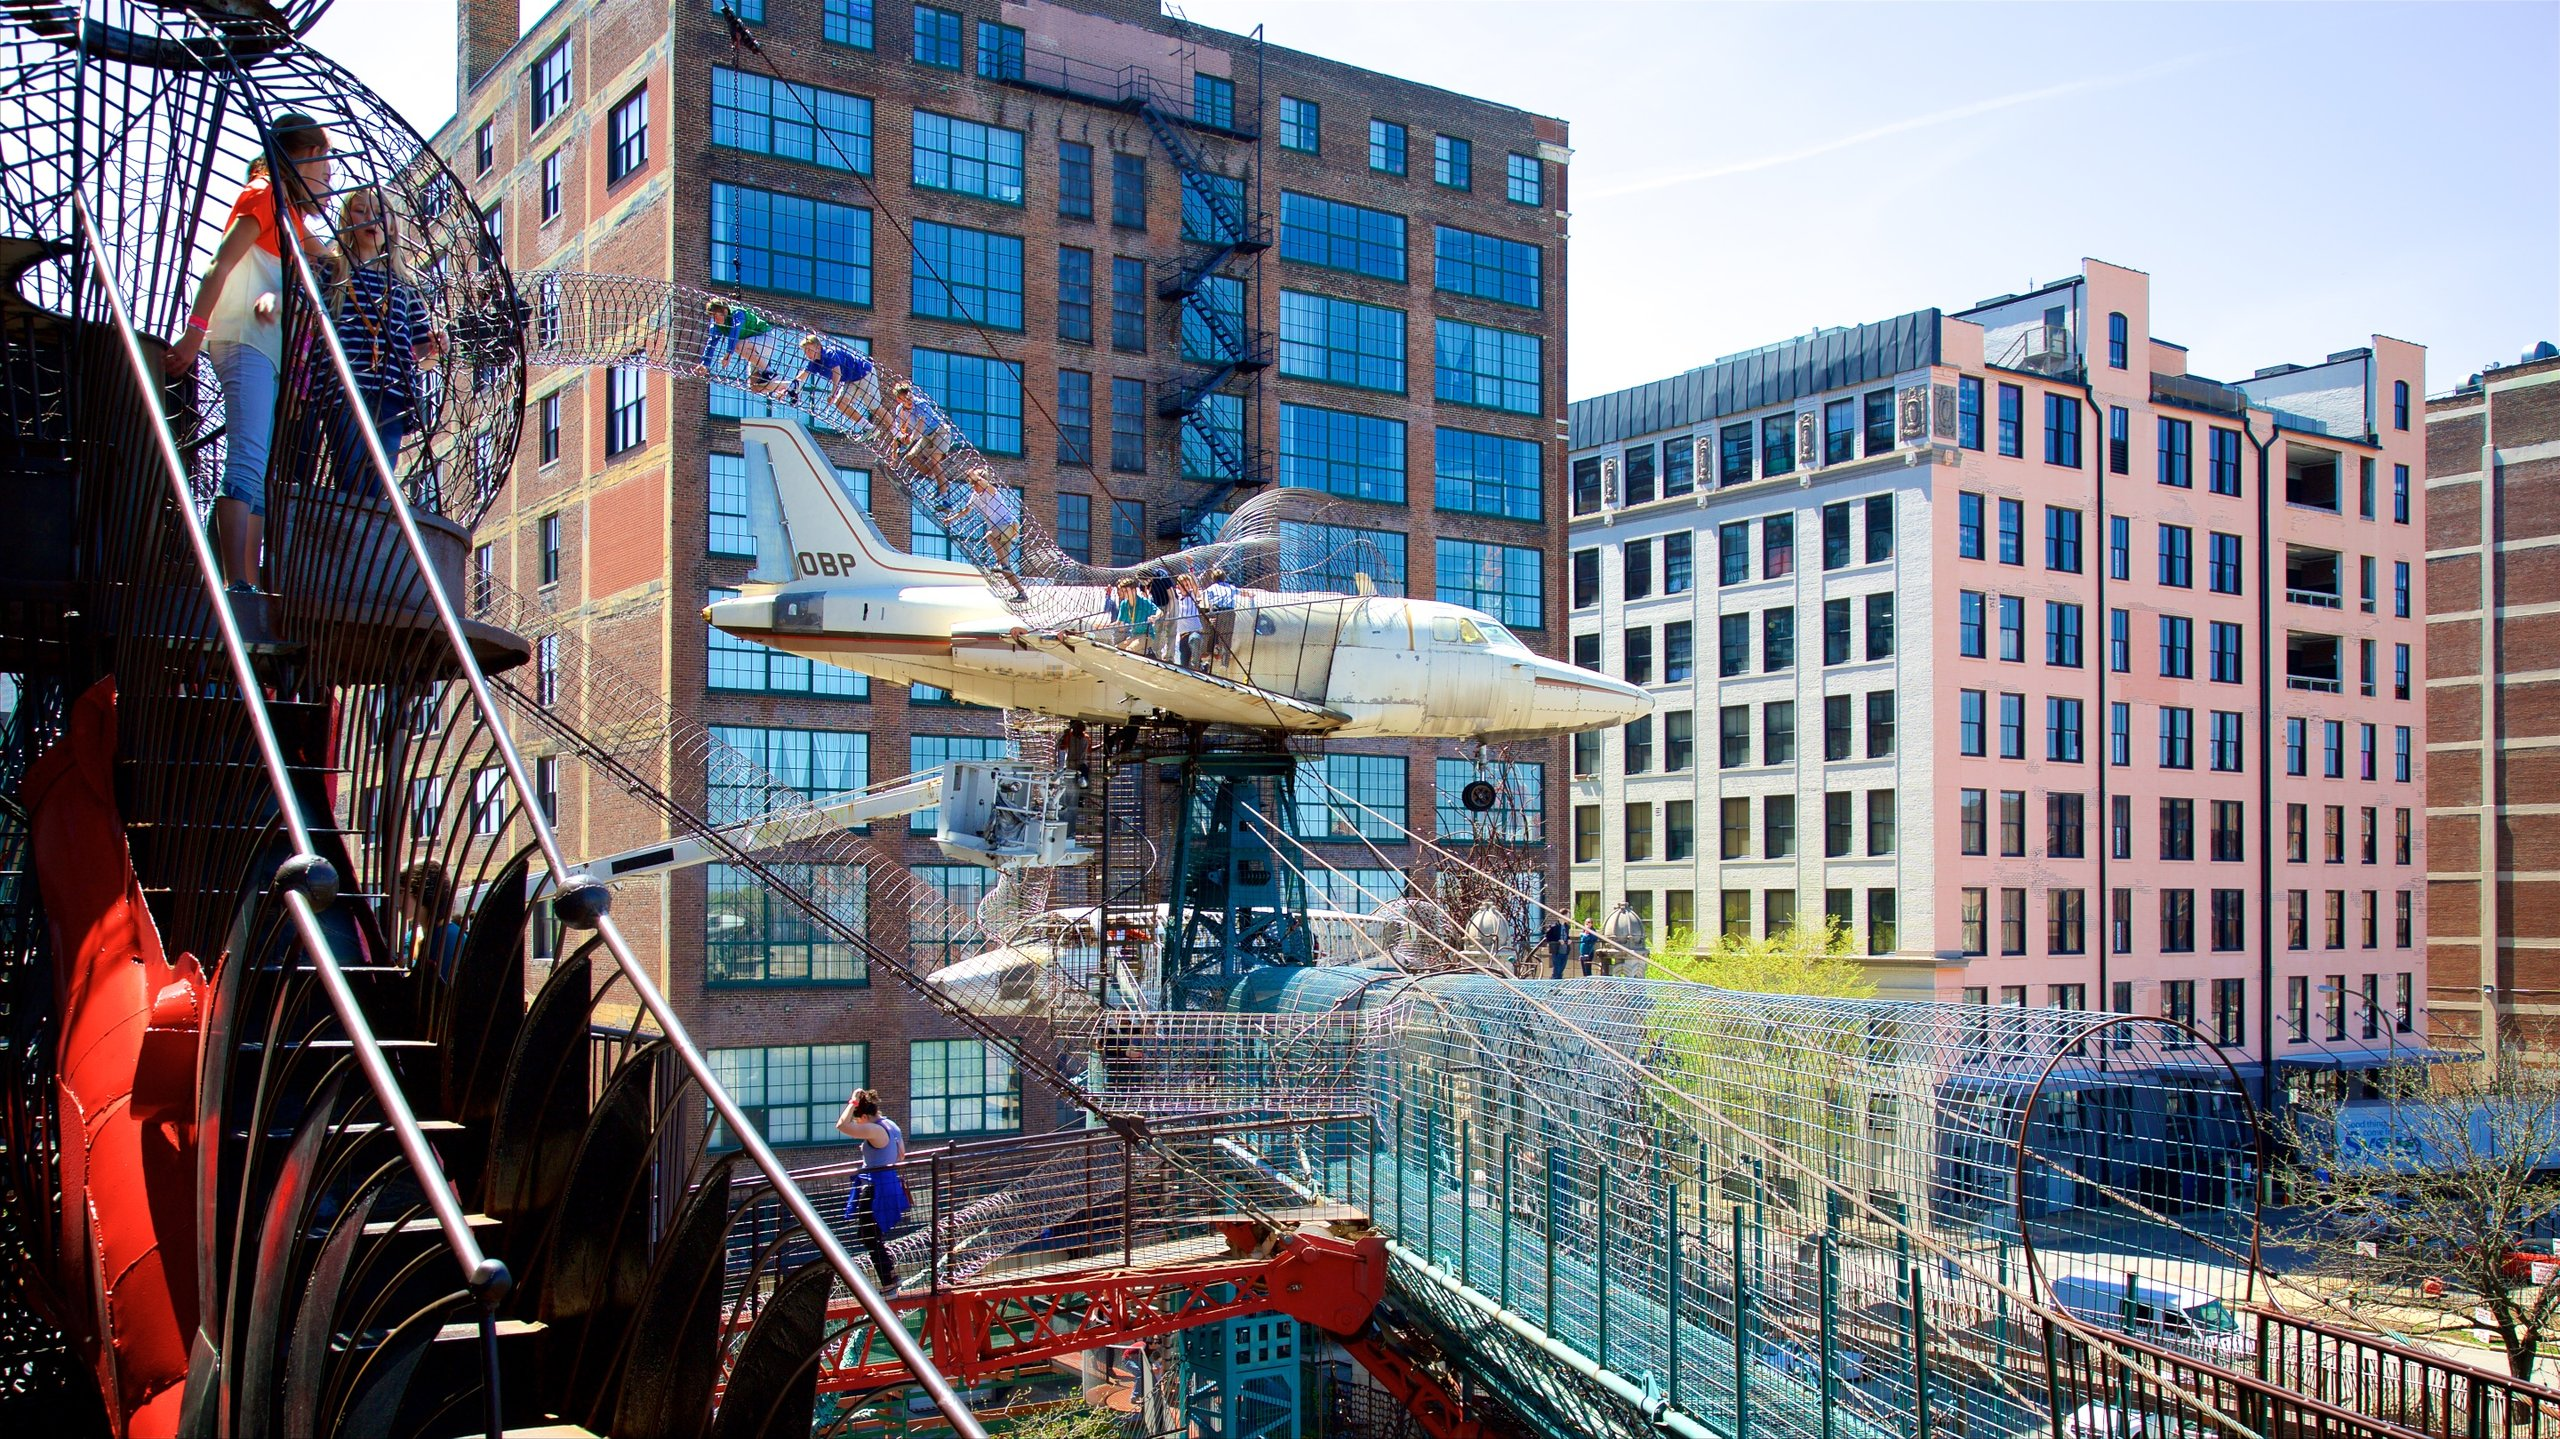 This quirky children's museum invites visitors to crawl through whales, climb into tree houses and whiz down three-story slides.